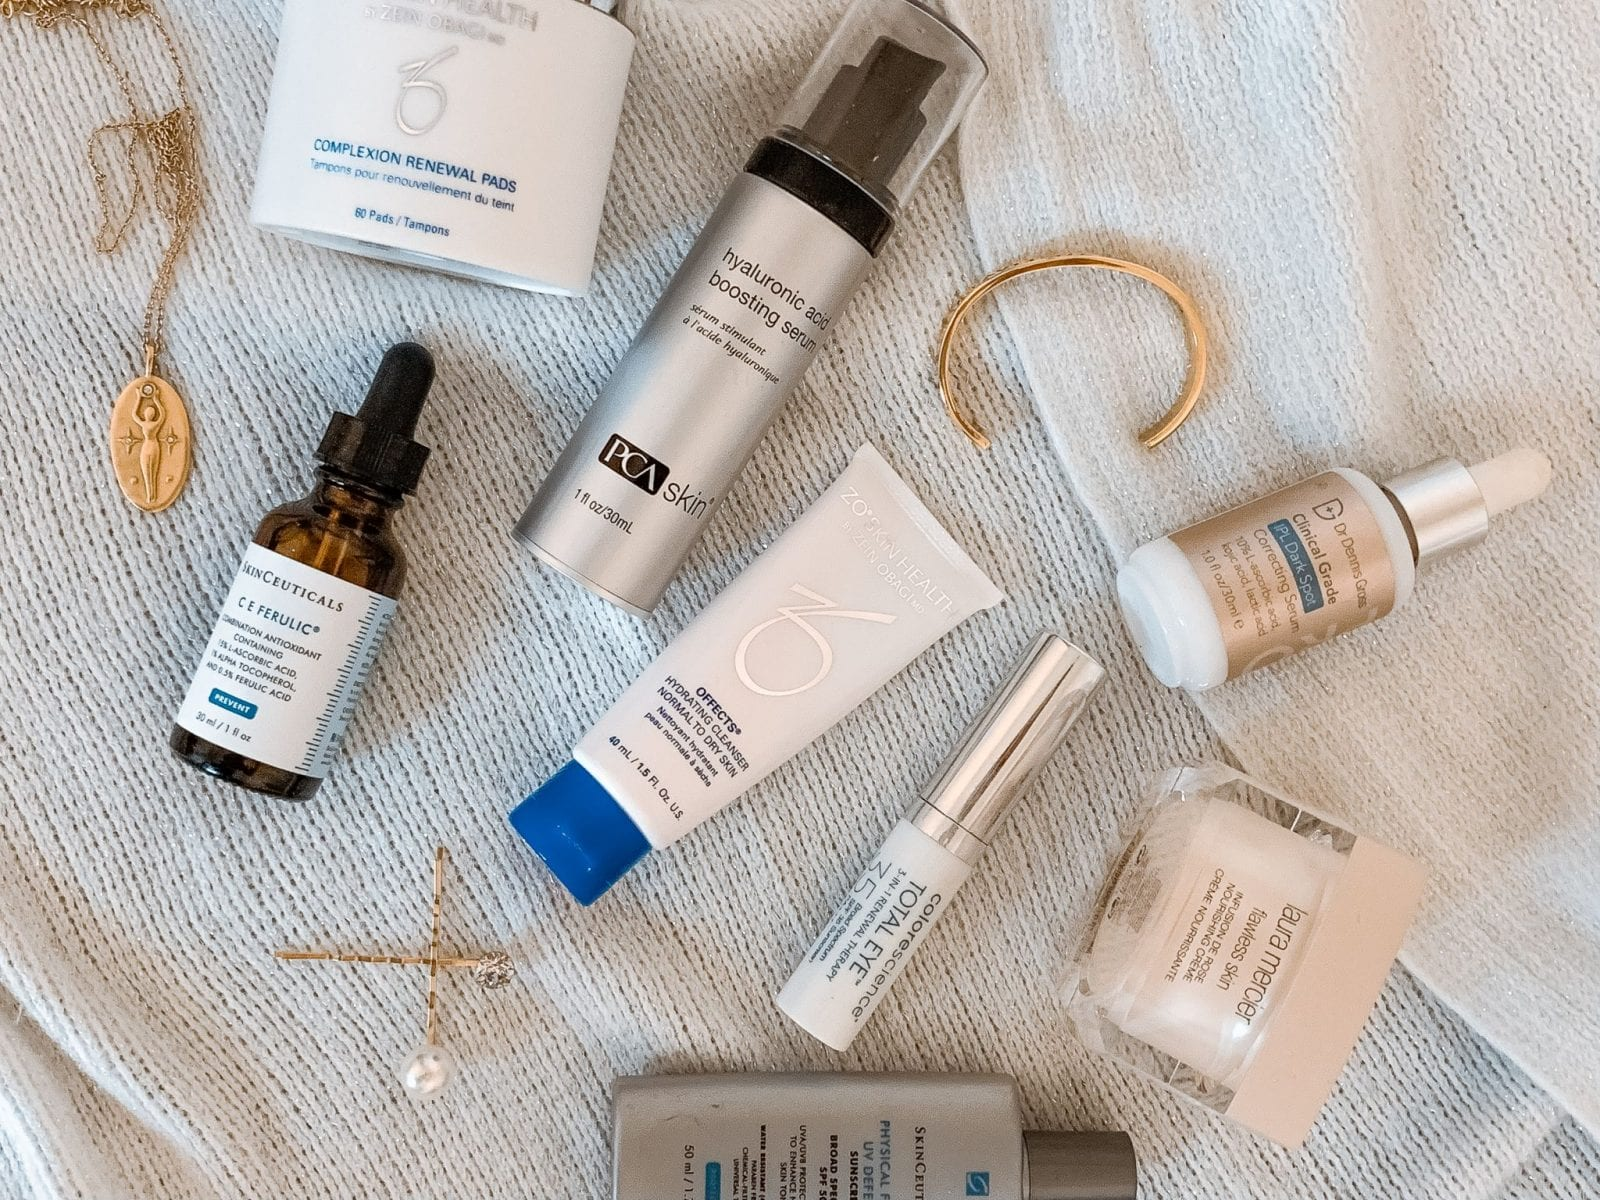 After a chemical peel, my aesthetician recommended a very specific skincare routine to ensure my skin stayed hydrated and healthy incorporating Skinceuticals, PCA Skin, Dr Dennis Gross and Laura Mercier.